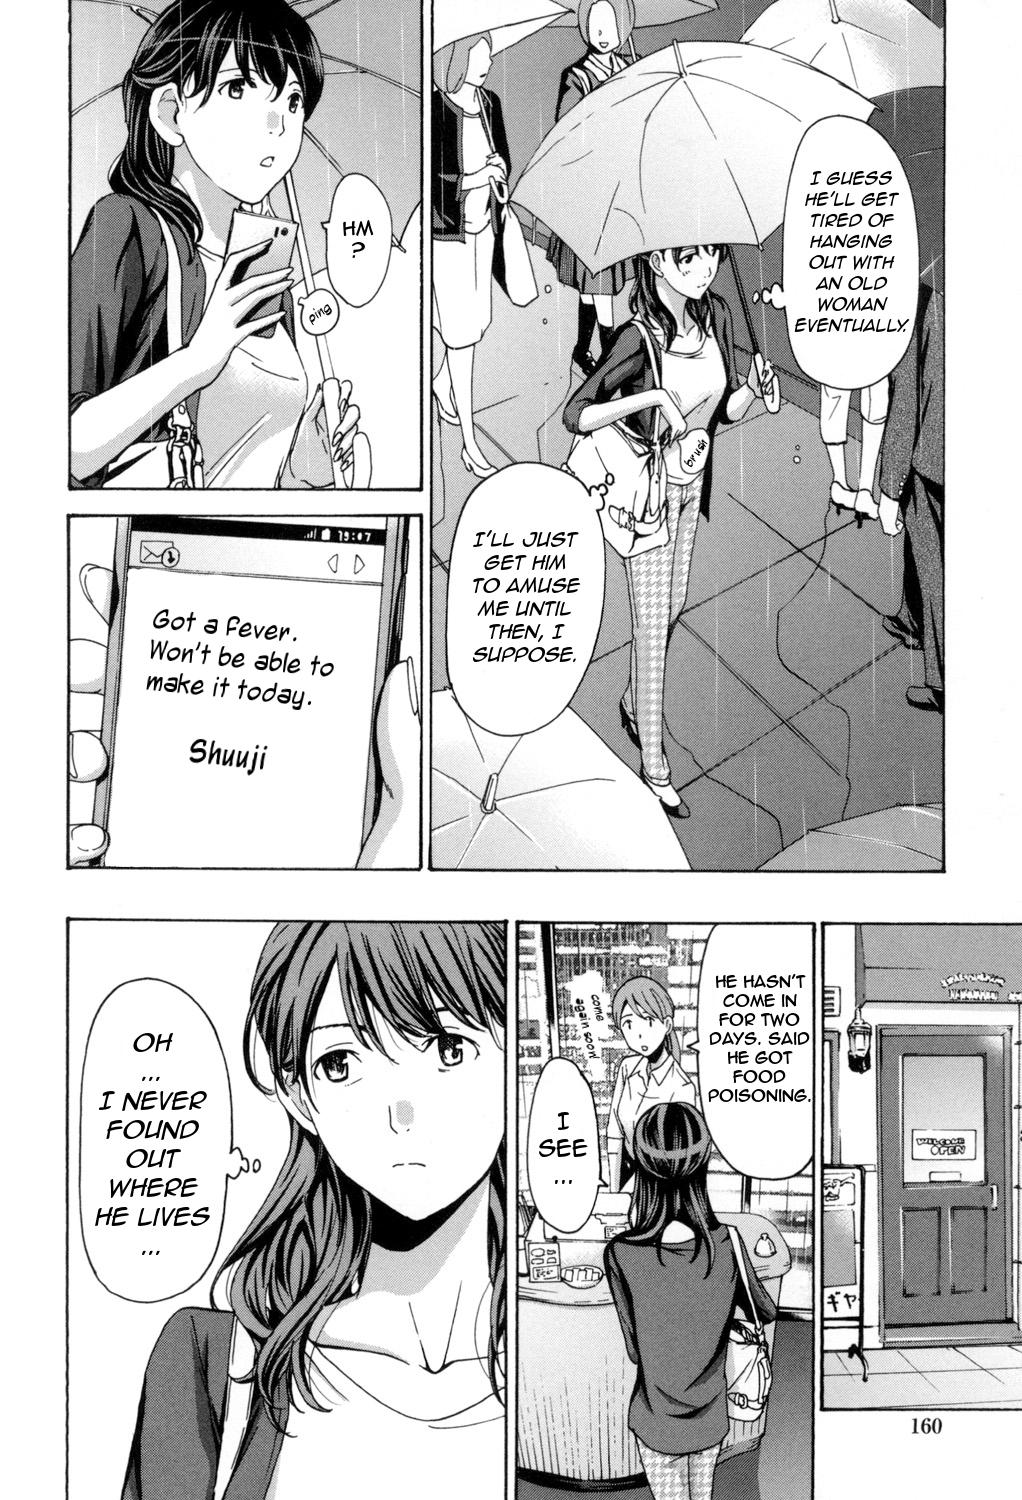 [Asagi Ryu] Onee-san to Aishiacchaou! - Let's Love with Your Sister | Making Love with an Older Woman [English] [Junryuu] 156